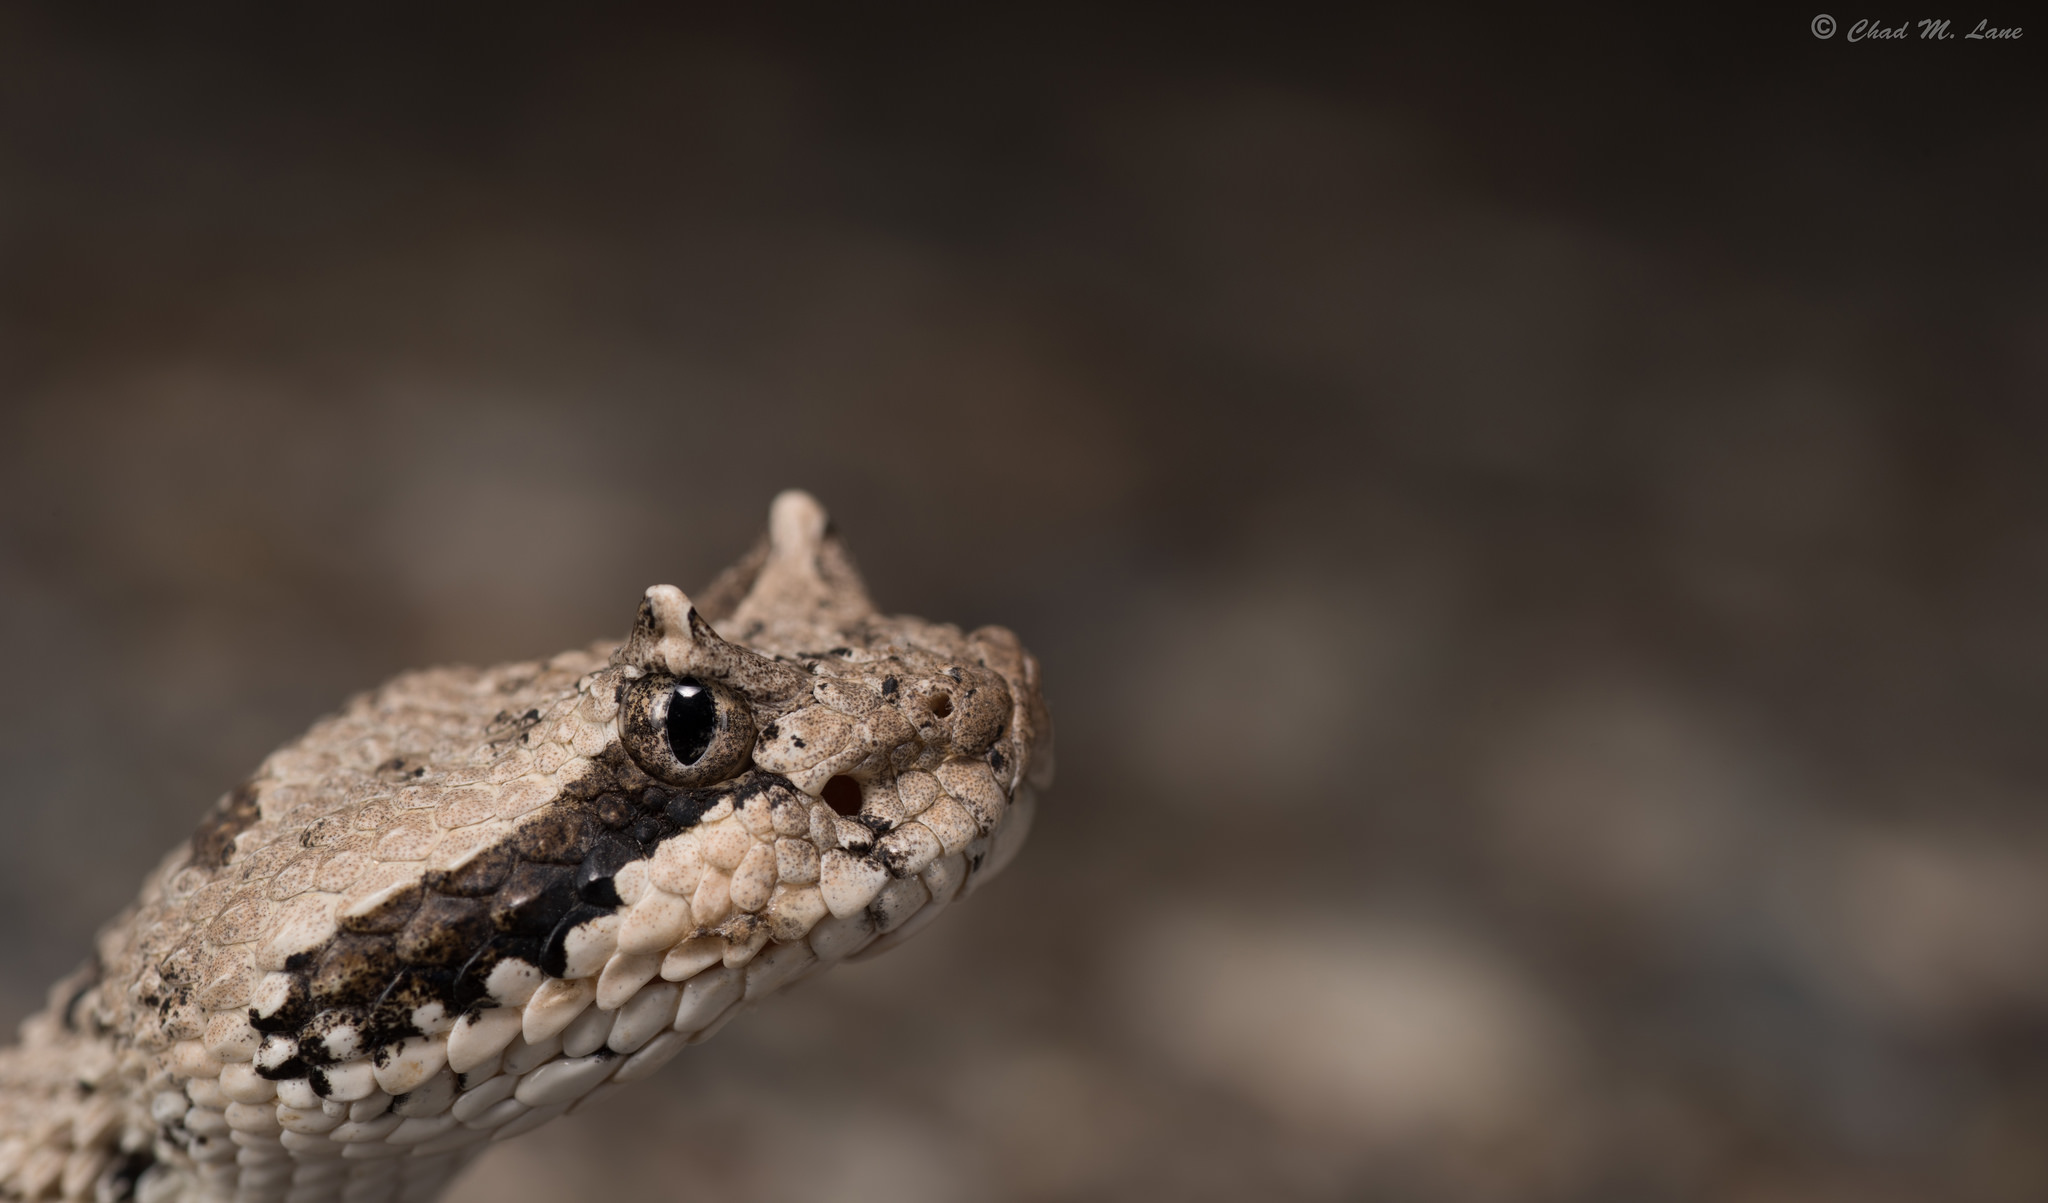 Mojave Desert Sidewinder photo by Chad M. Lane